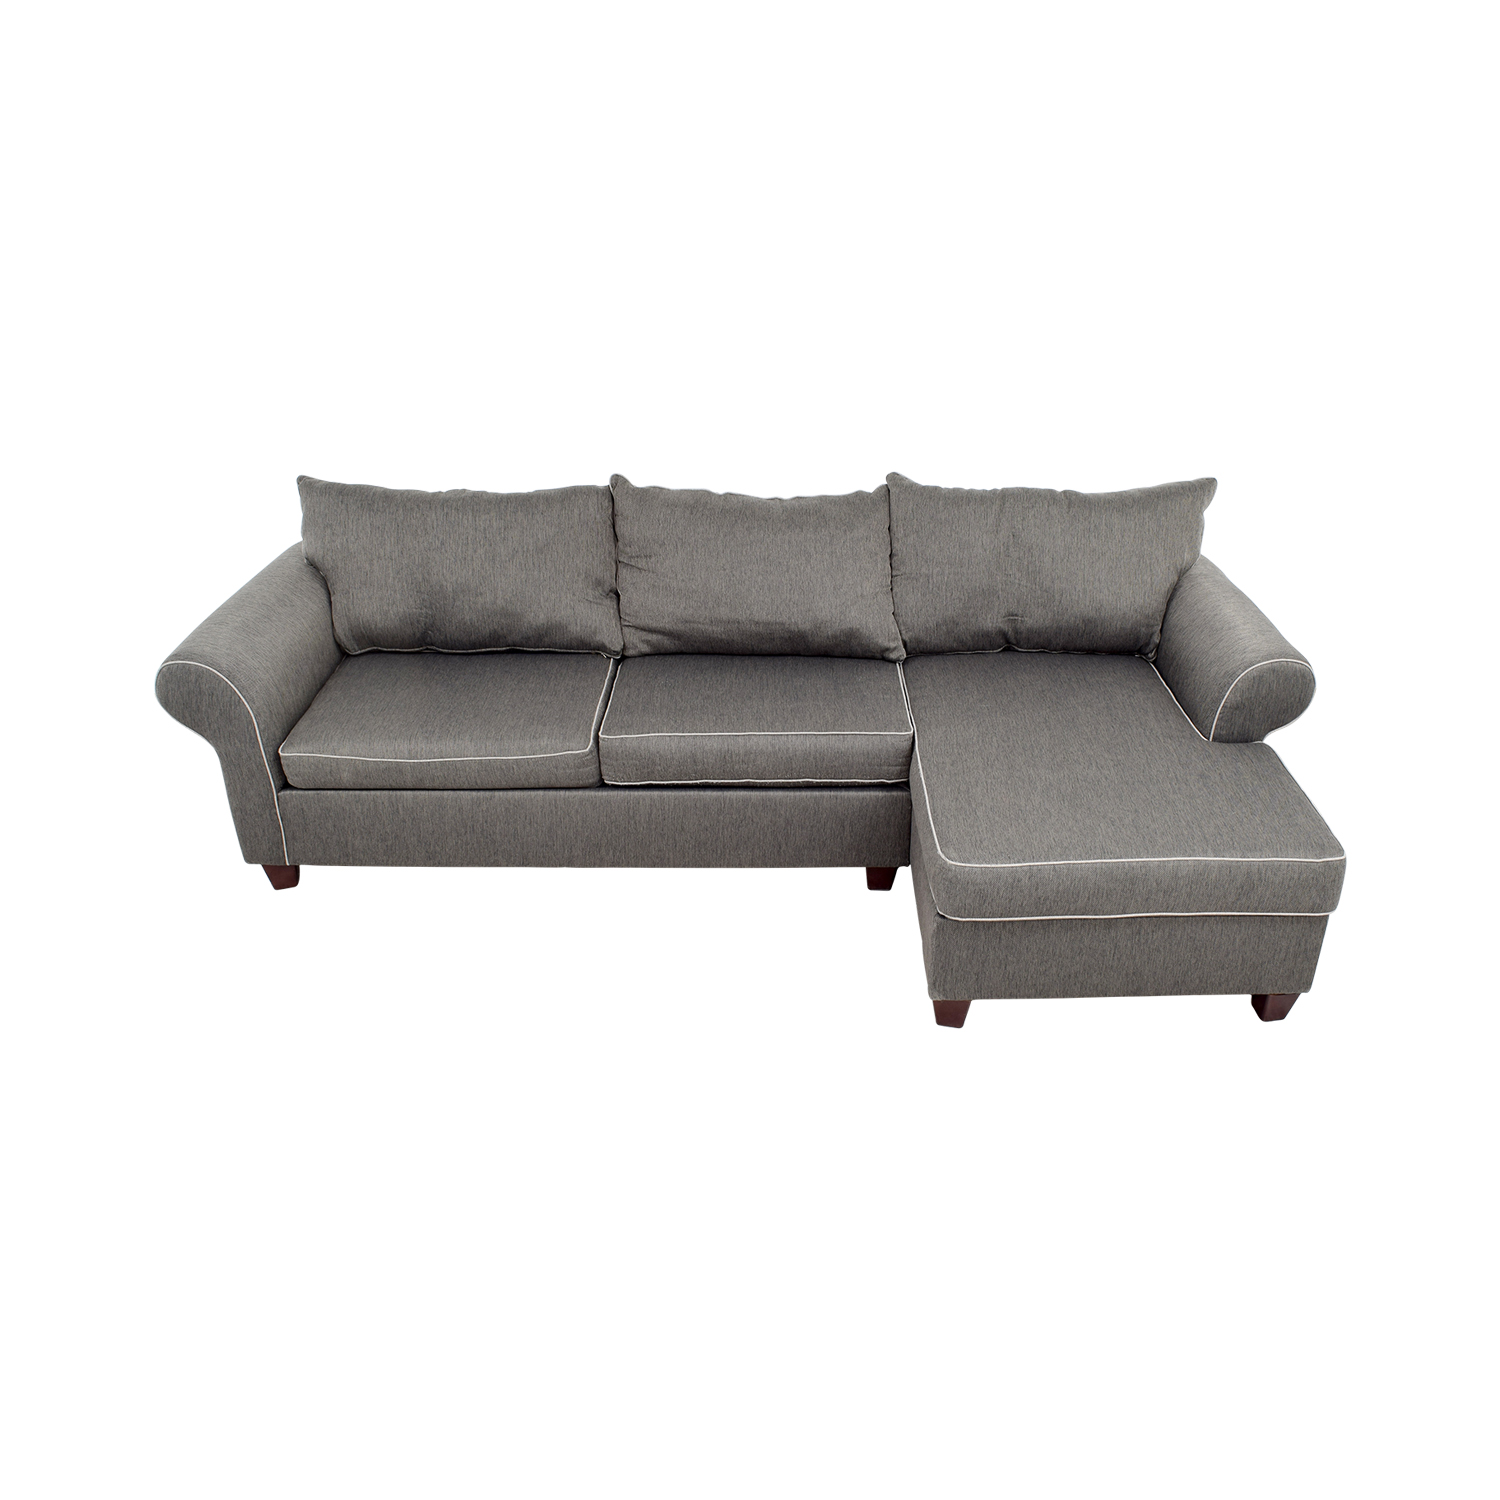 Bobs Furniture Bobs Furniture Grey Chaise Sectional used